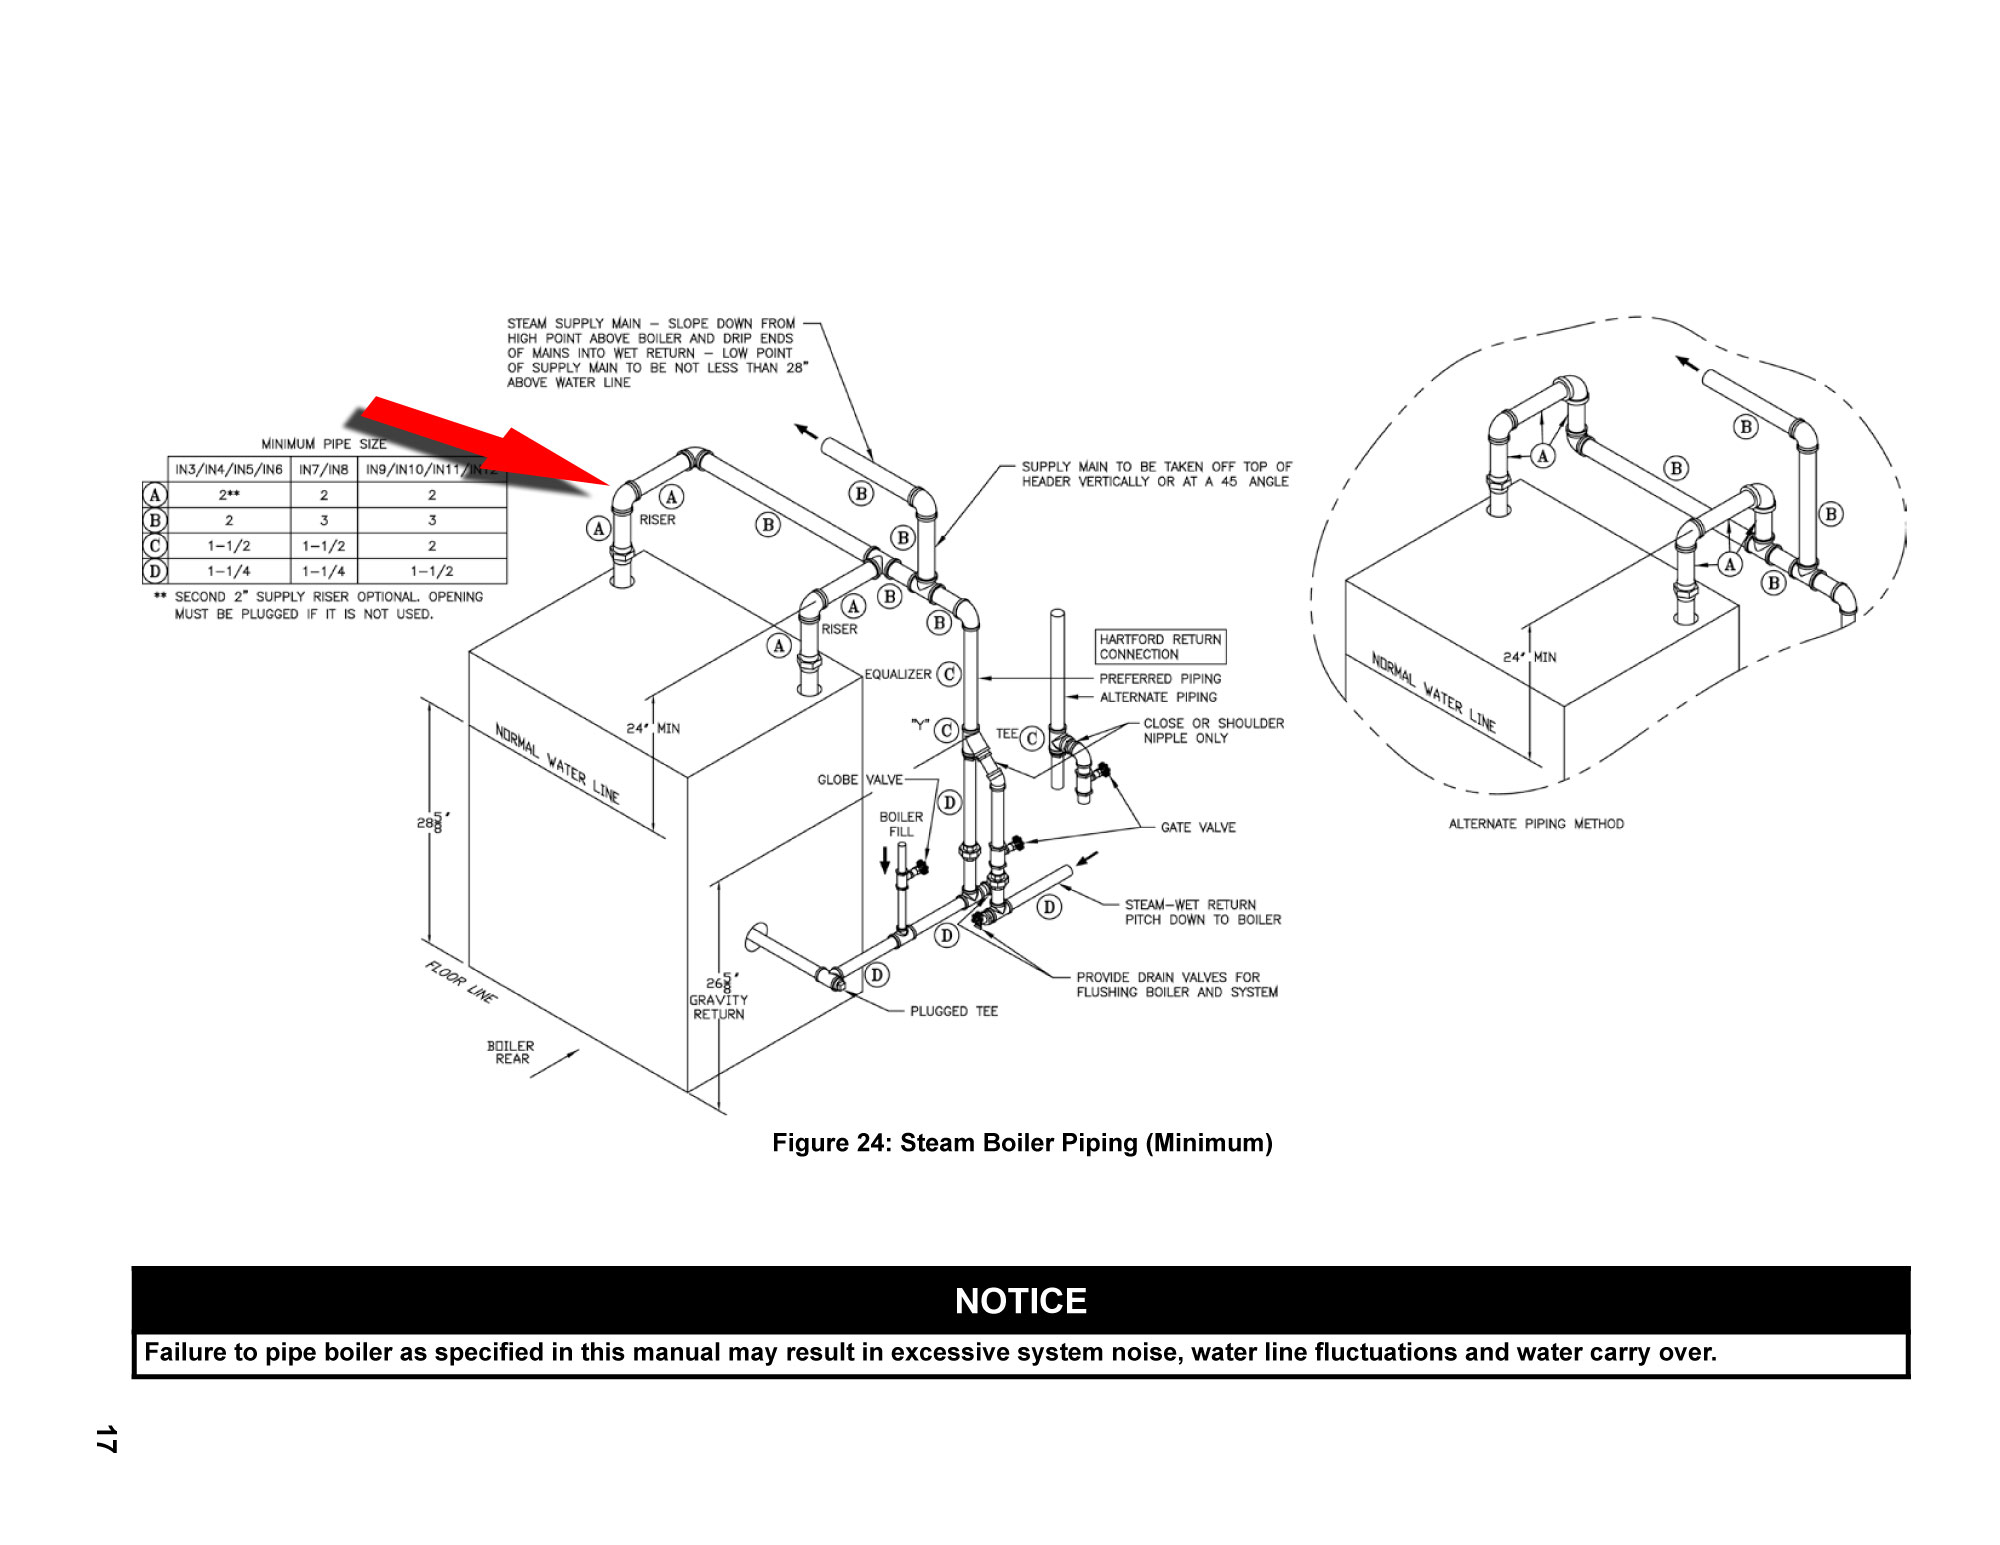 Just Curious Heating Help The Wall Piping Diagram Of Steam Boiler 17798 Prod File Draggeda 0b